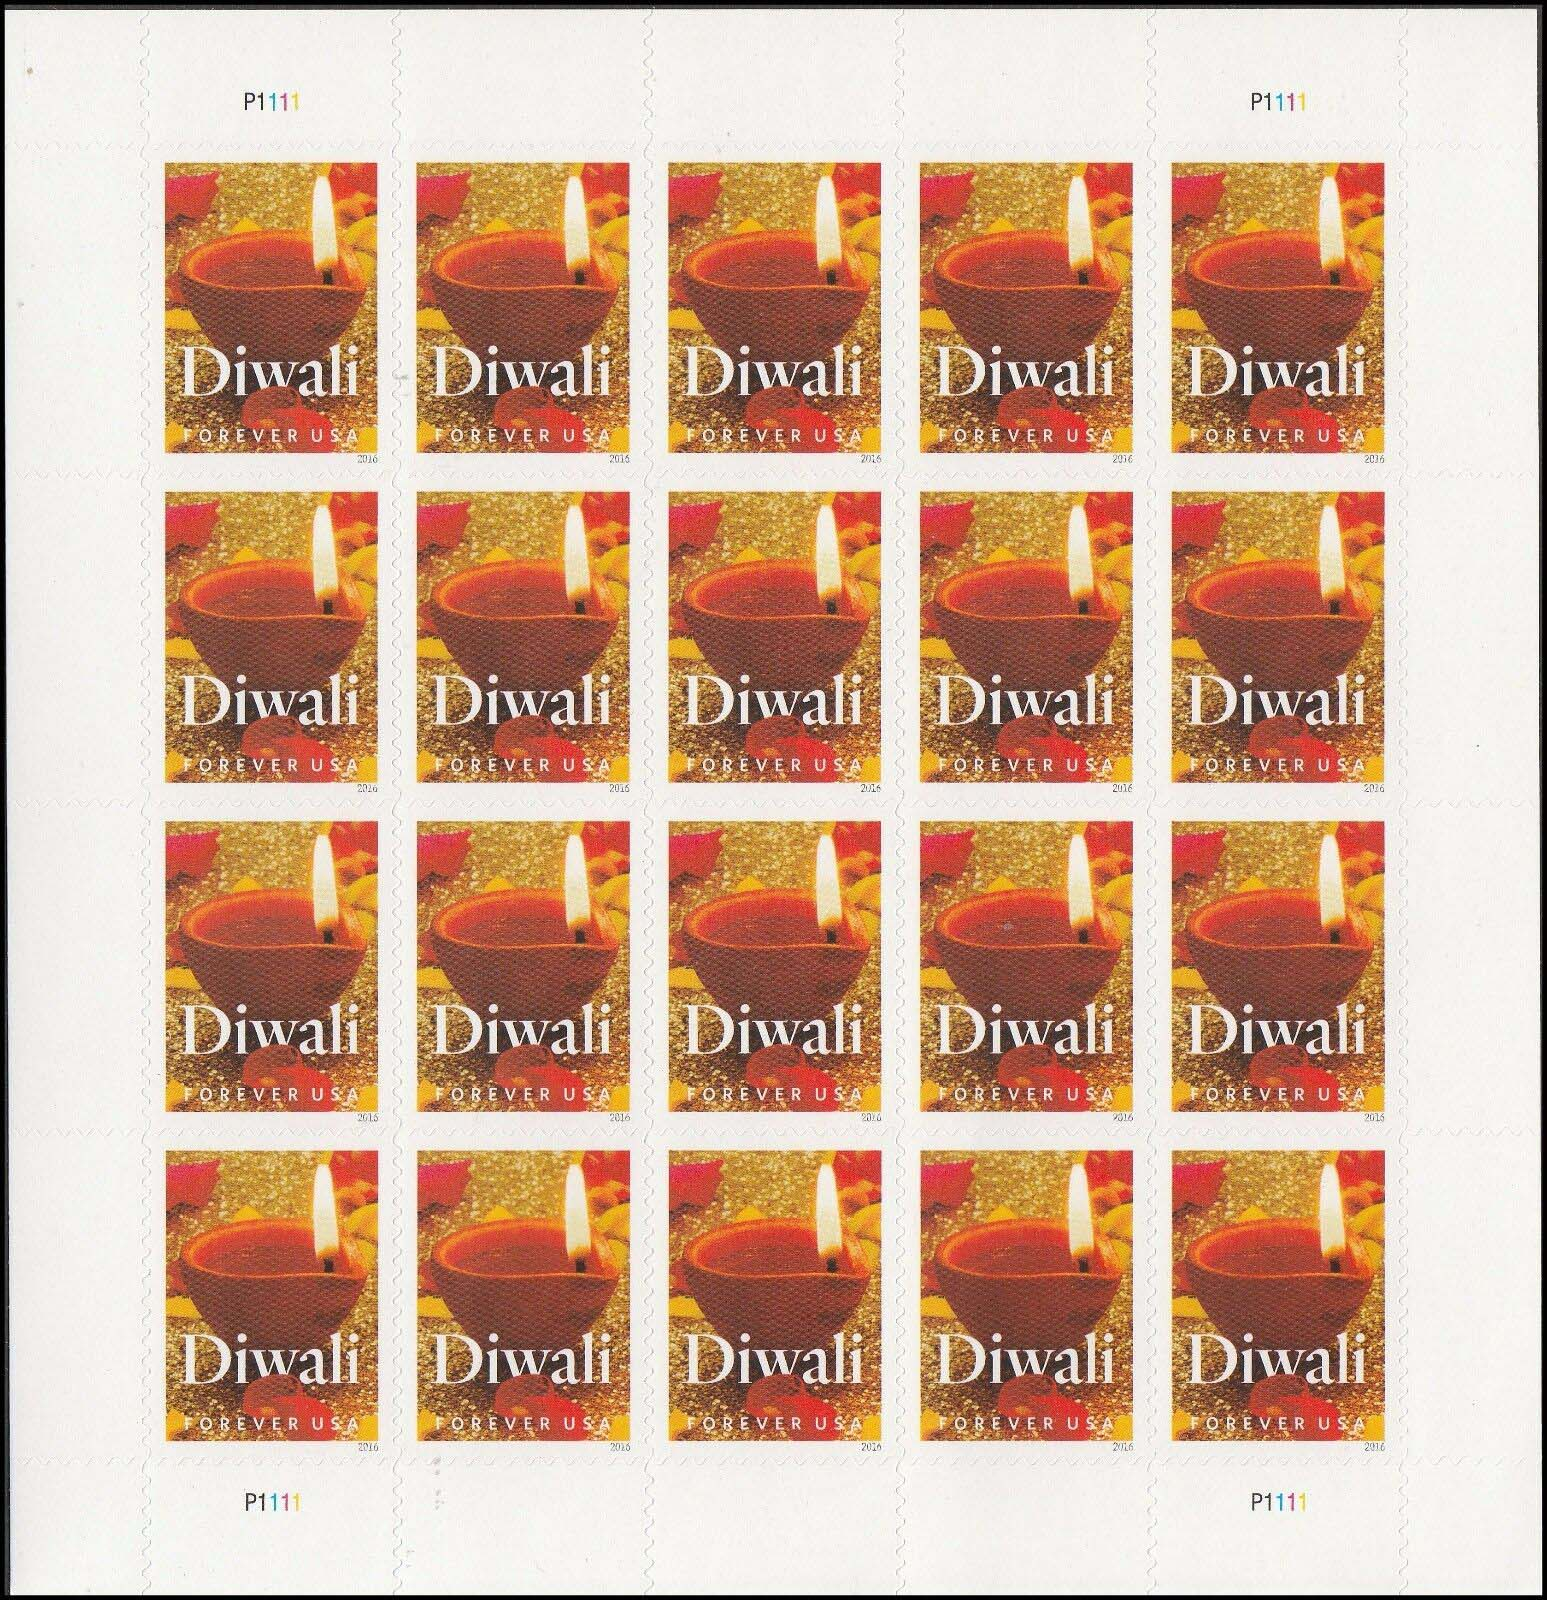 "Scott 5142 Sheet, Forever Stamp, sheet of 20, Diwali <p> <a href=""/images/USA-Scott-5142-Sheet.jpg""><font color=green><b>View the image</a></b></font>"